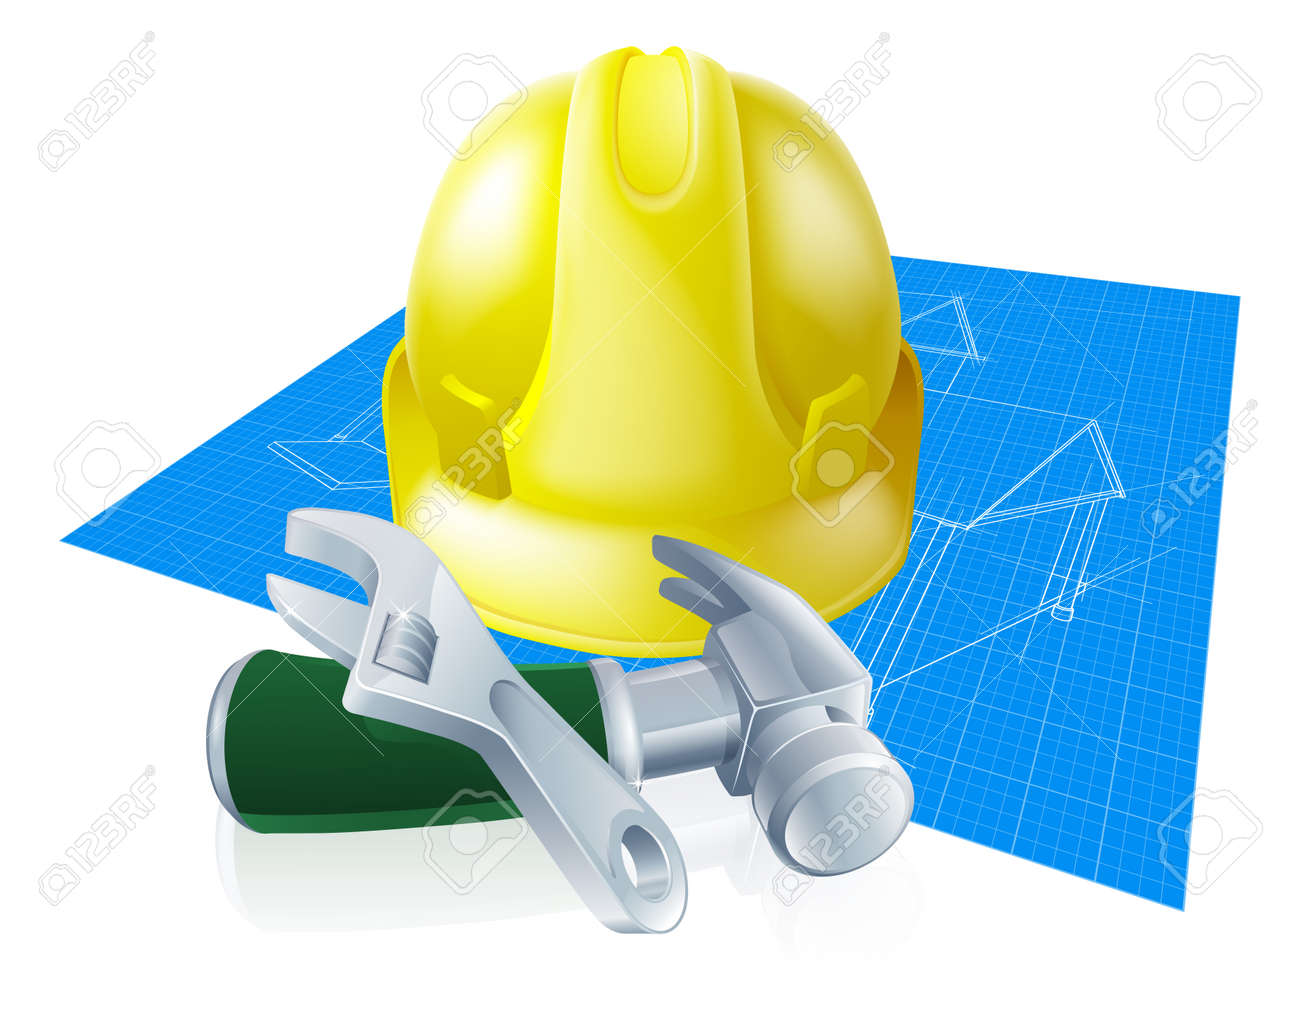 Hard hat tools and blueprint construction industry illustration hard hat tools and blueprint construction industry illustration a yellow hard hat helmet spanner malvernweather Images